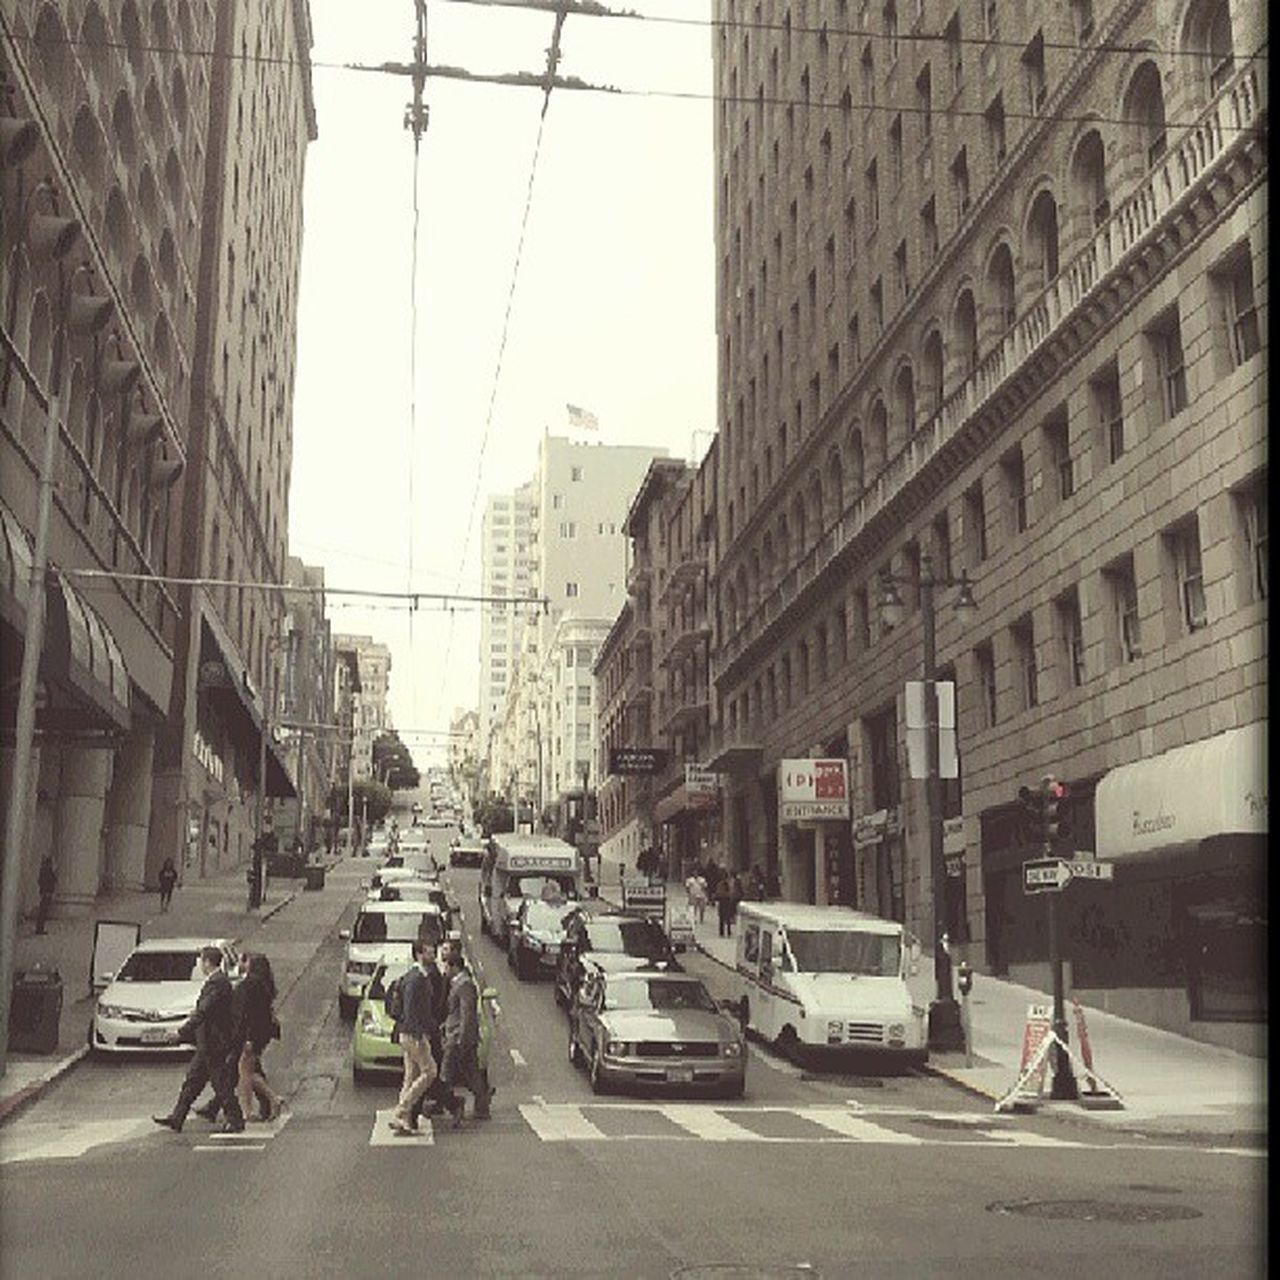 city, street, architecture, transportation, road, building exterior, city life, car, land vehicle, built structure, real people, mode of transport, walking, day, outdoors, men, skyscraper, electricity pylon, sky, cityscape, adult, people